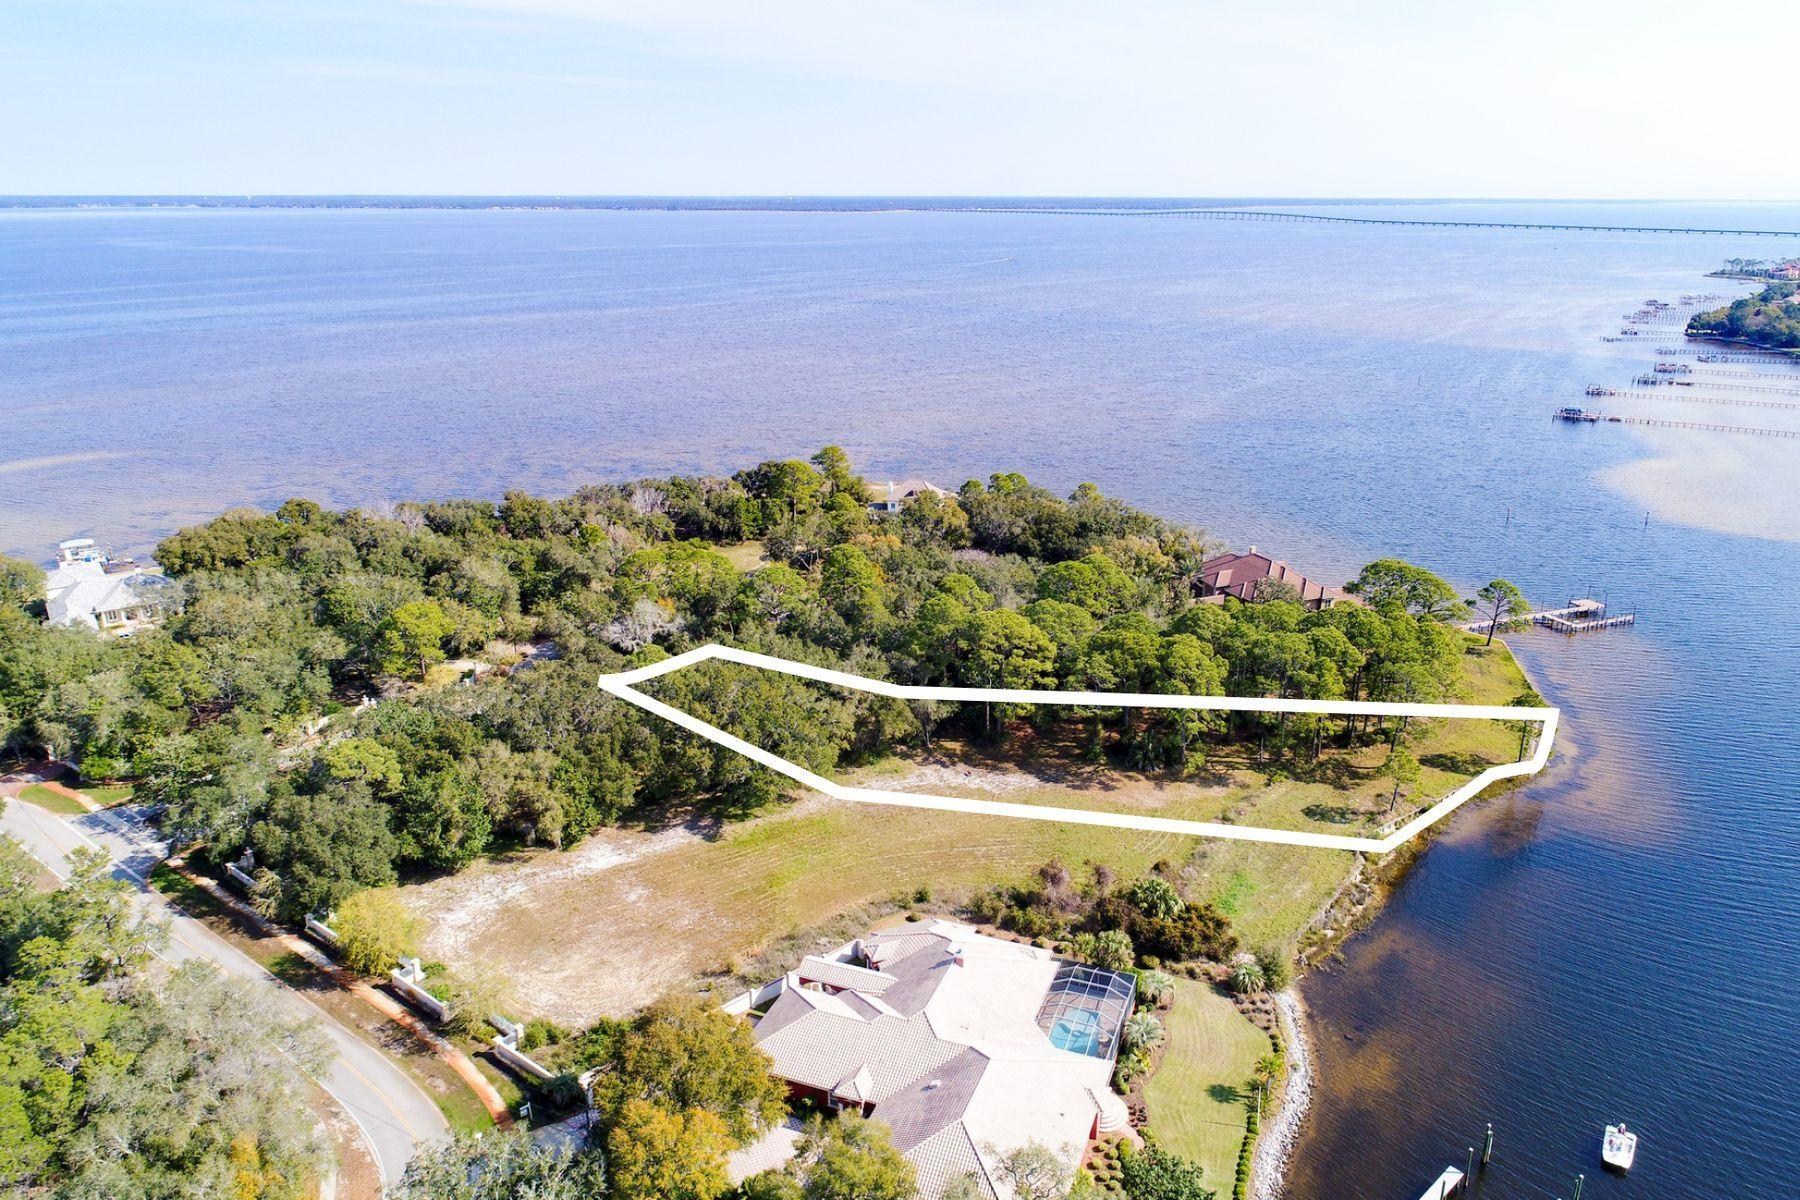 The Estates at Indian Pointe is a gated enclave of Bay and Bayou front home sites in Destin, Florida. This .87 acre Bayou front lot features deep water access, essential for the avid boater. Tucked away at the very east end of Indian Trail, occupying what is perhaps the most remote waterfront location in Destin, this especially private piece of property is only an 11 minute drive from beach access with parking, as well as shopping, dining, seasonal entertainment, and chartered fishing excursions at Harborwalk Village on the Destin Harbor. The Estates at Indian Pointe is the pinnacle of luxury waterfront living for those who refuse to compromise the beach lifestyle in order to pursue their passion for boating.